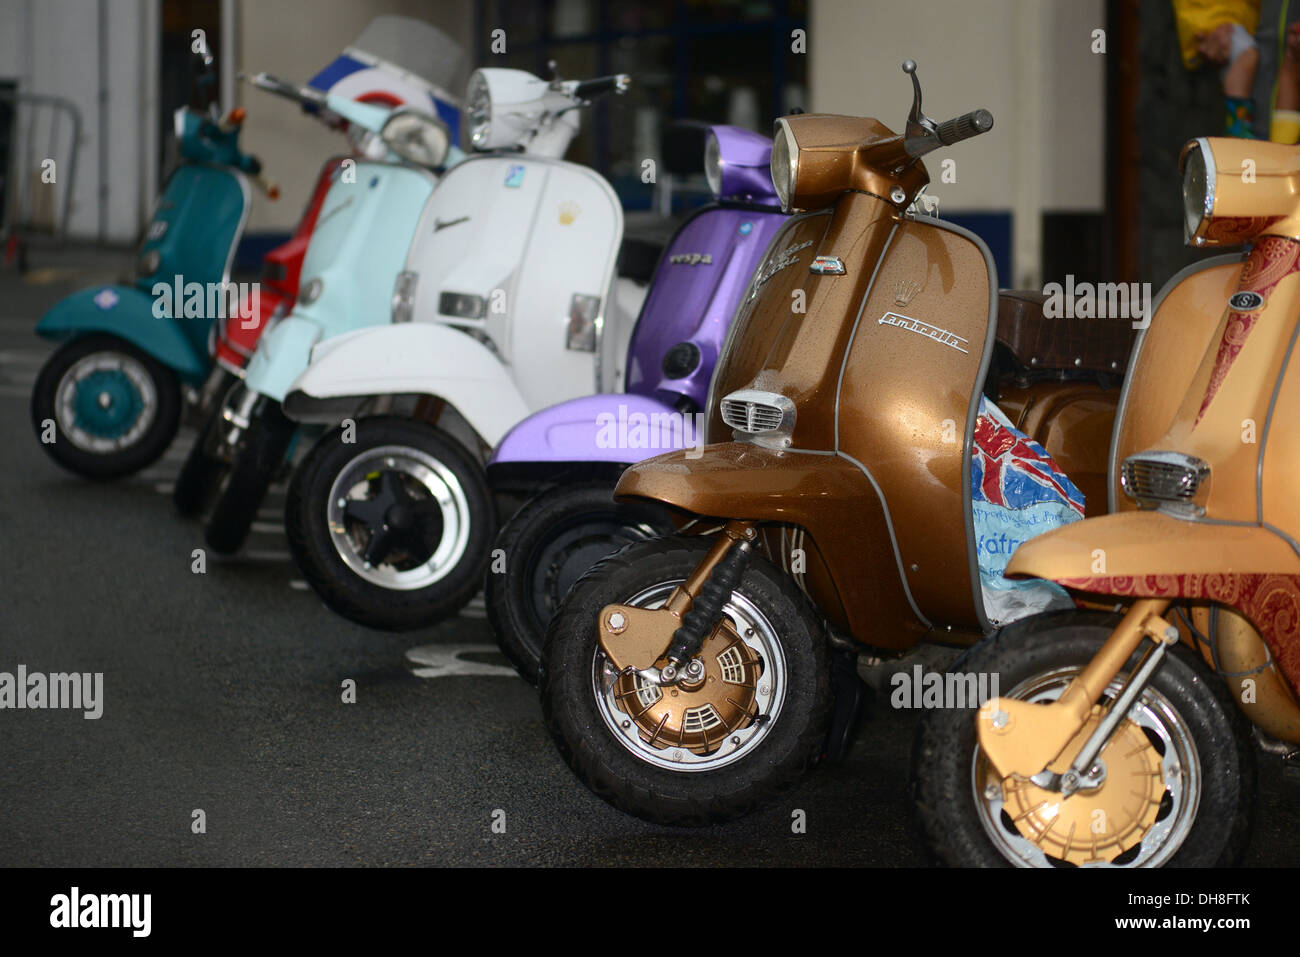 Scooters parked in a parking bay - Stock Image